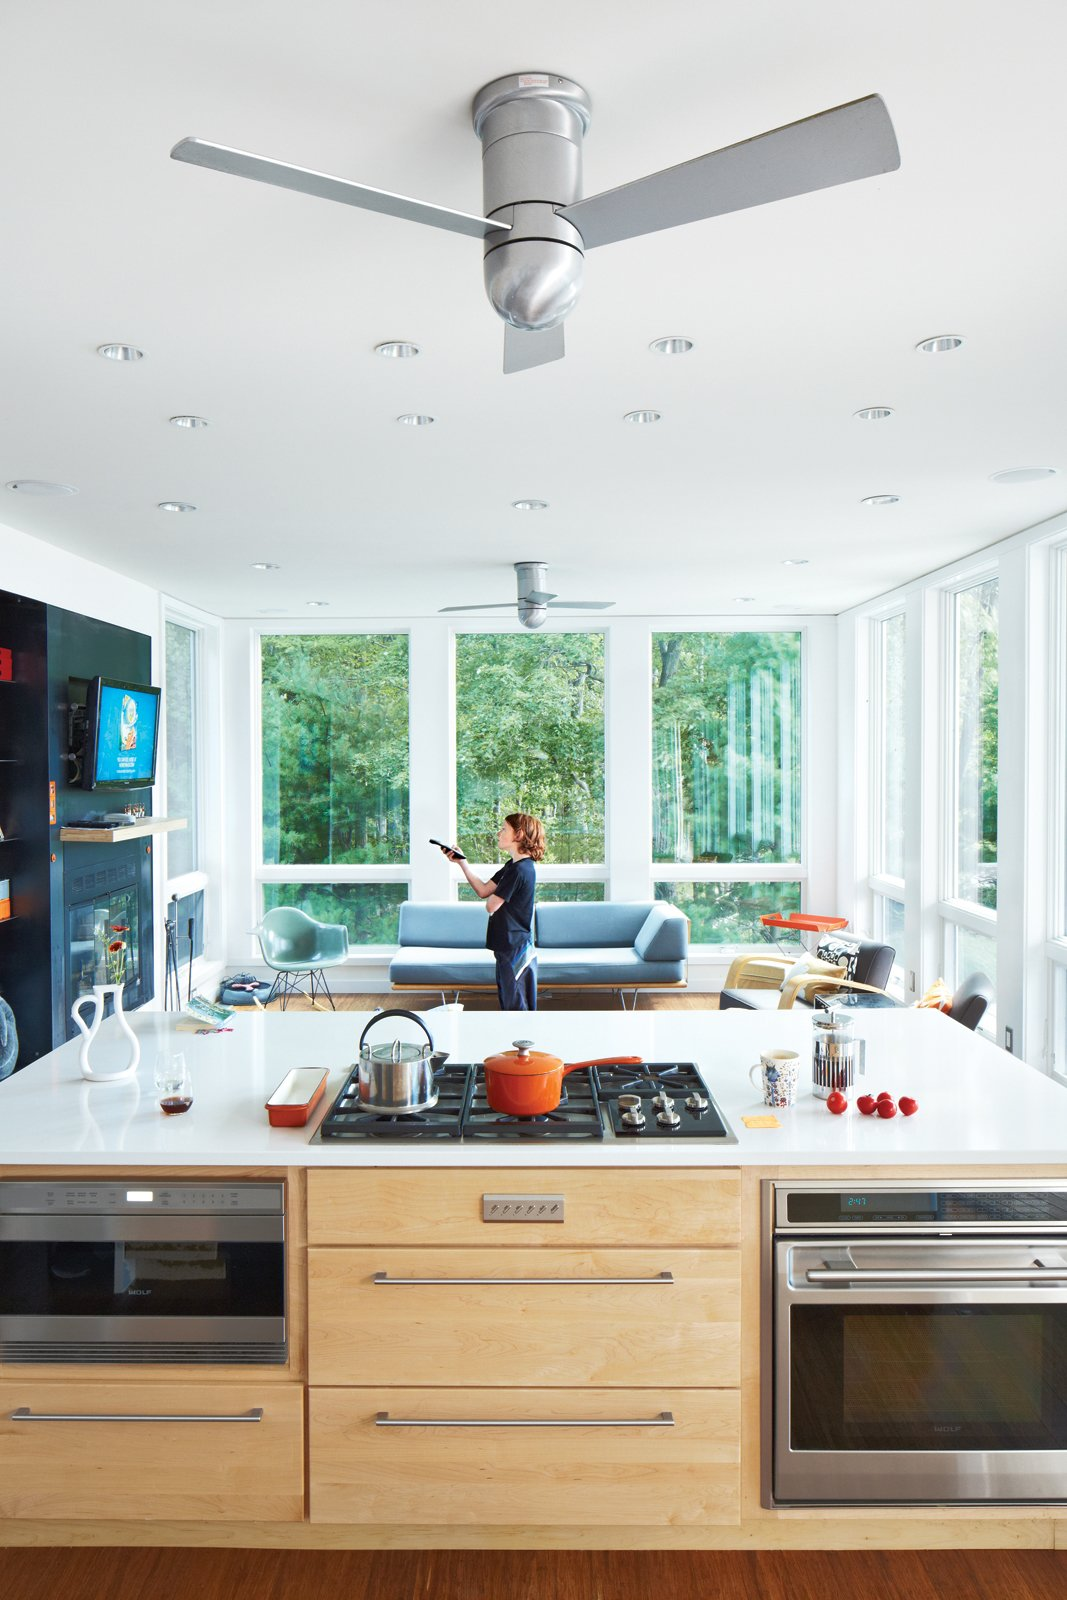 Modern Fan Company's Cirrus Hugger models help the breeze along. She had low-level Sub-Zero and Wolf appliances as well as pop-up vents installed in the kitchen so there's nothing at eye level.  Kitchen from The New Zealand Native Who Can't Get Enough of the Garden State